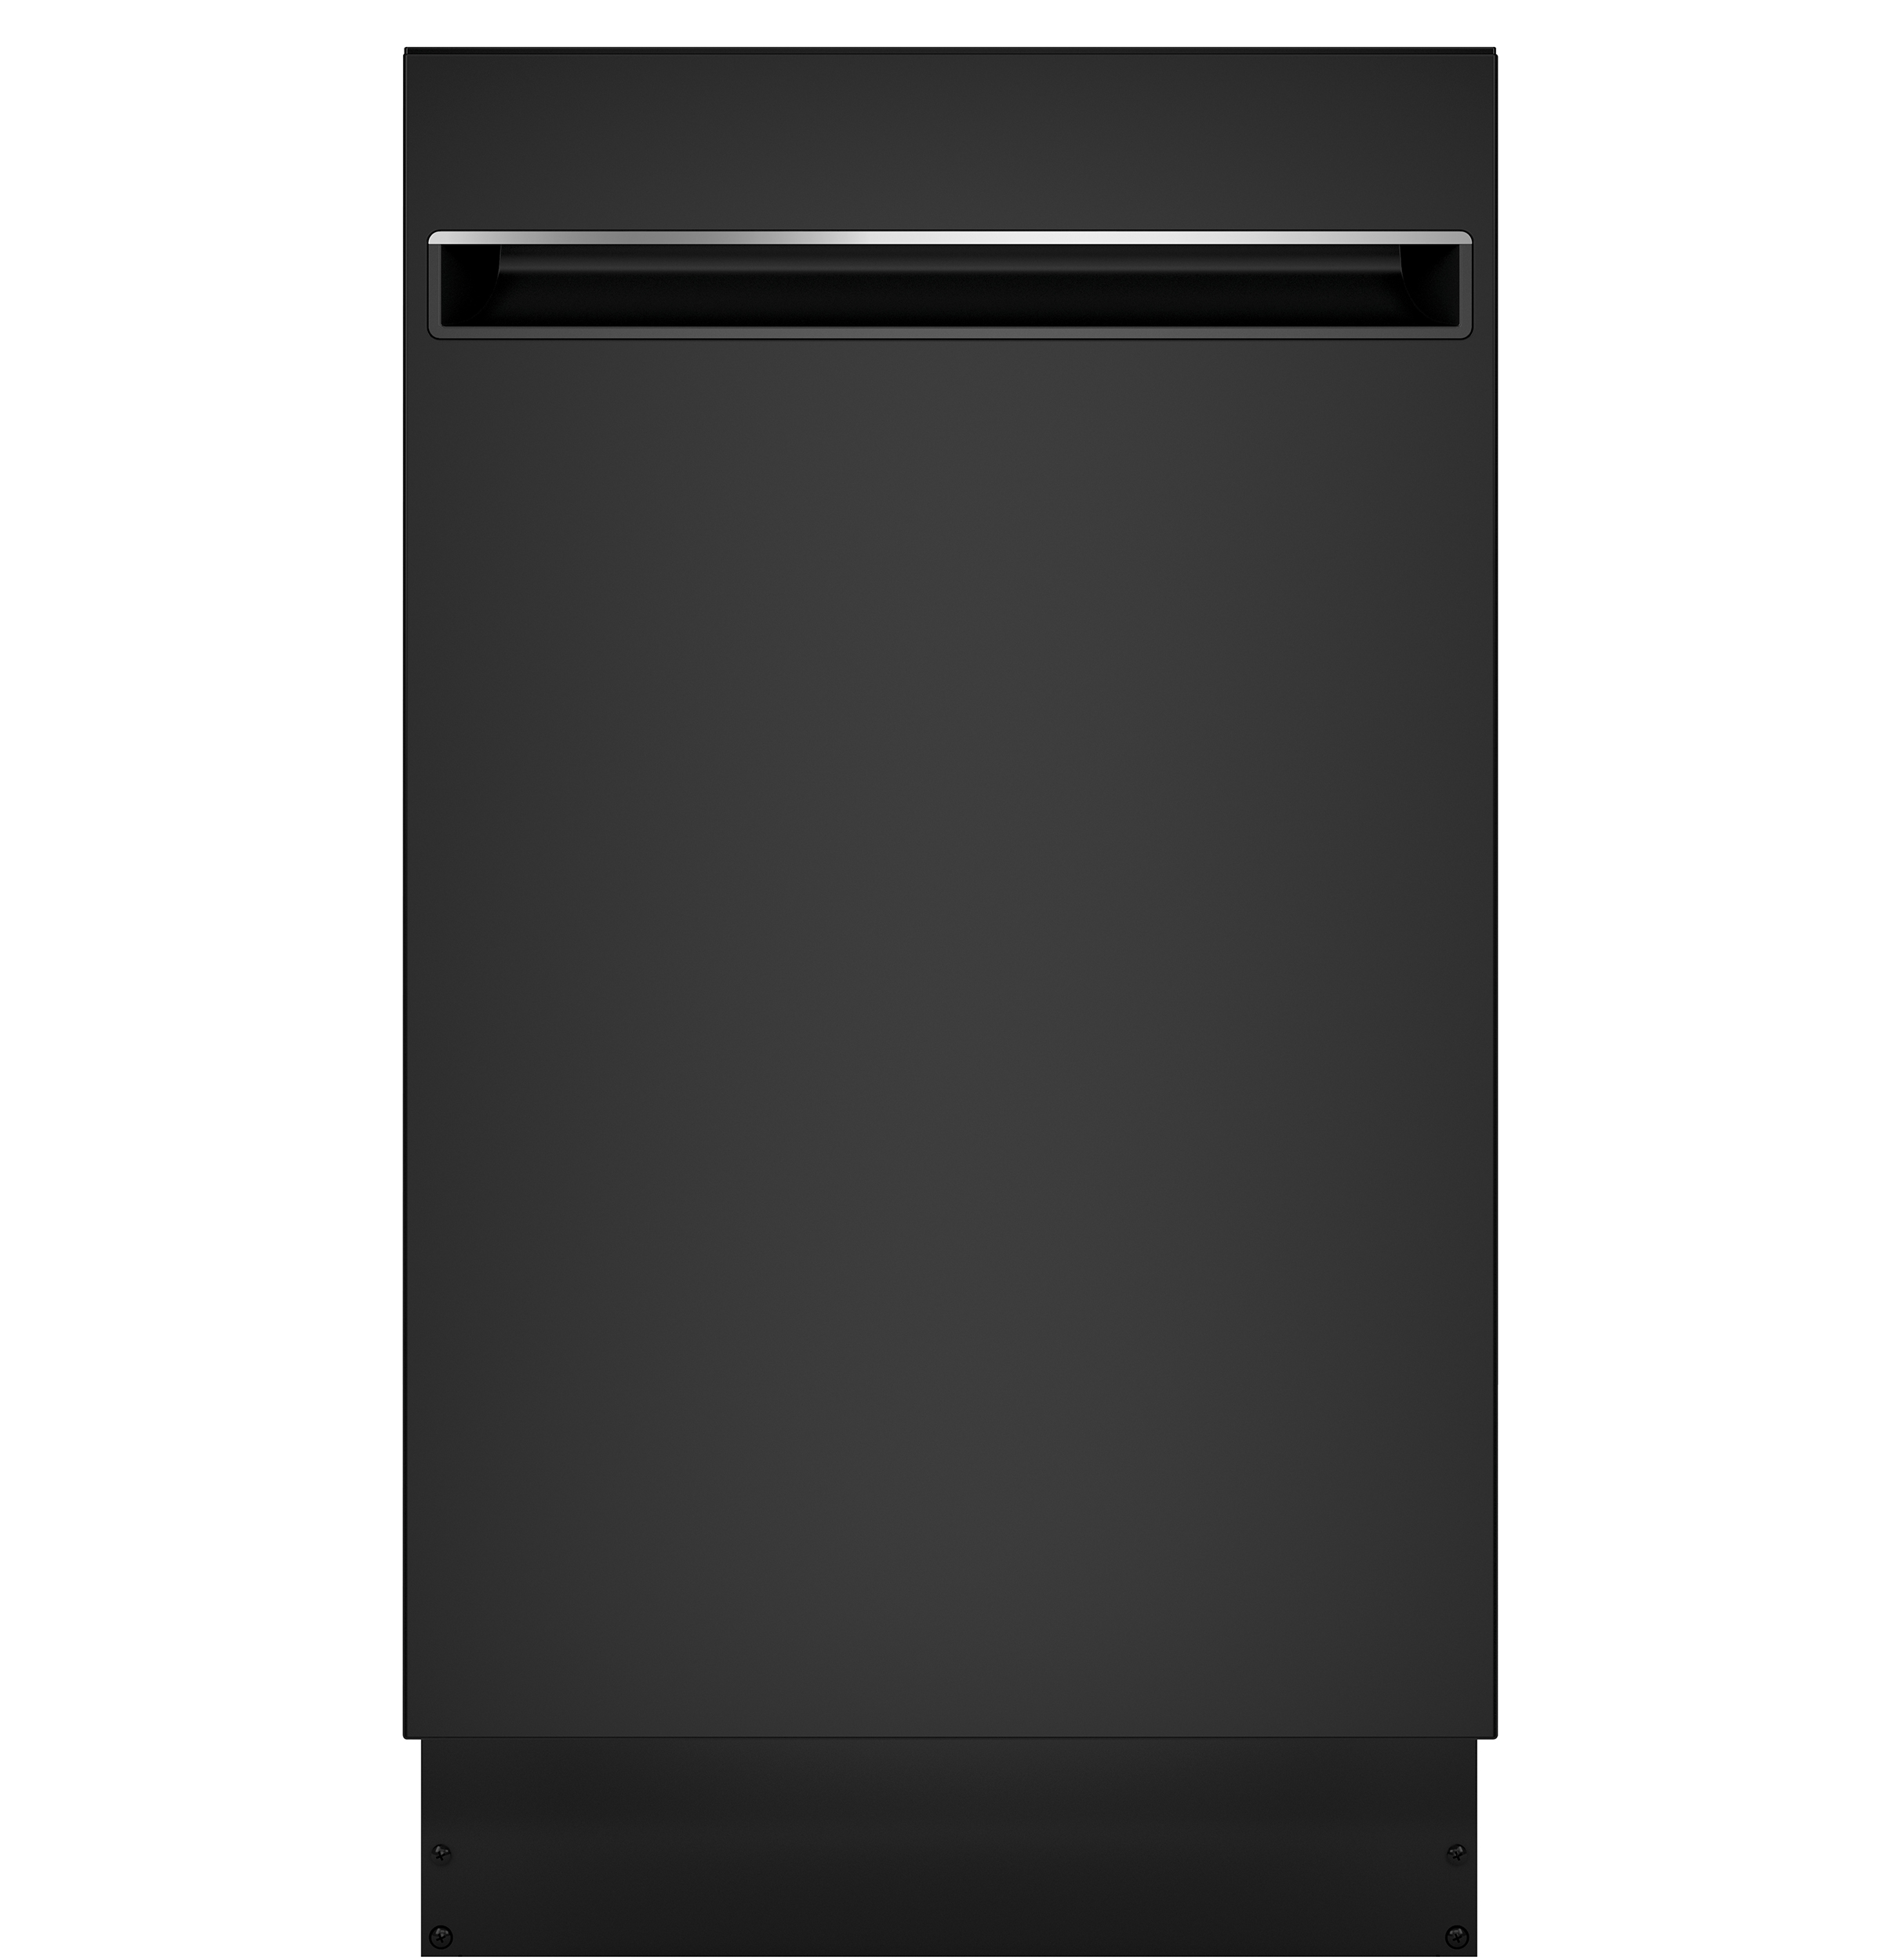 """Profile GE Profile™ 18"""" ADA Compliant Stainless Steel Interior Dishwasher with Sanitize Cycle"""